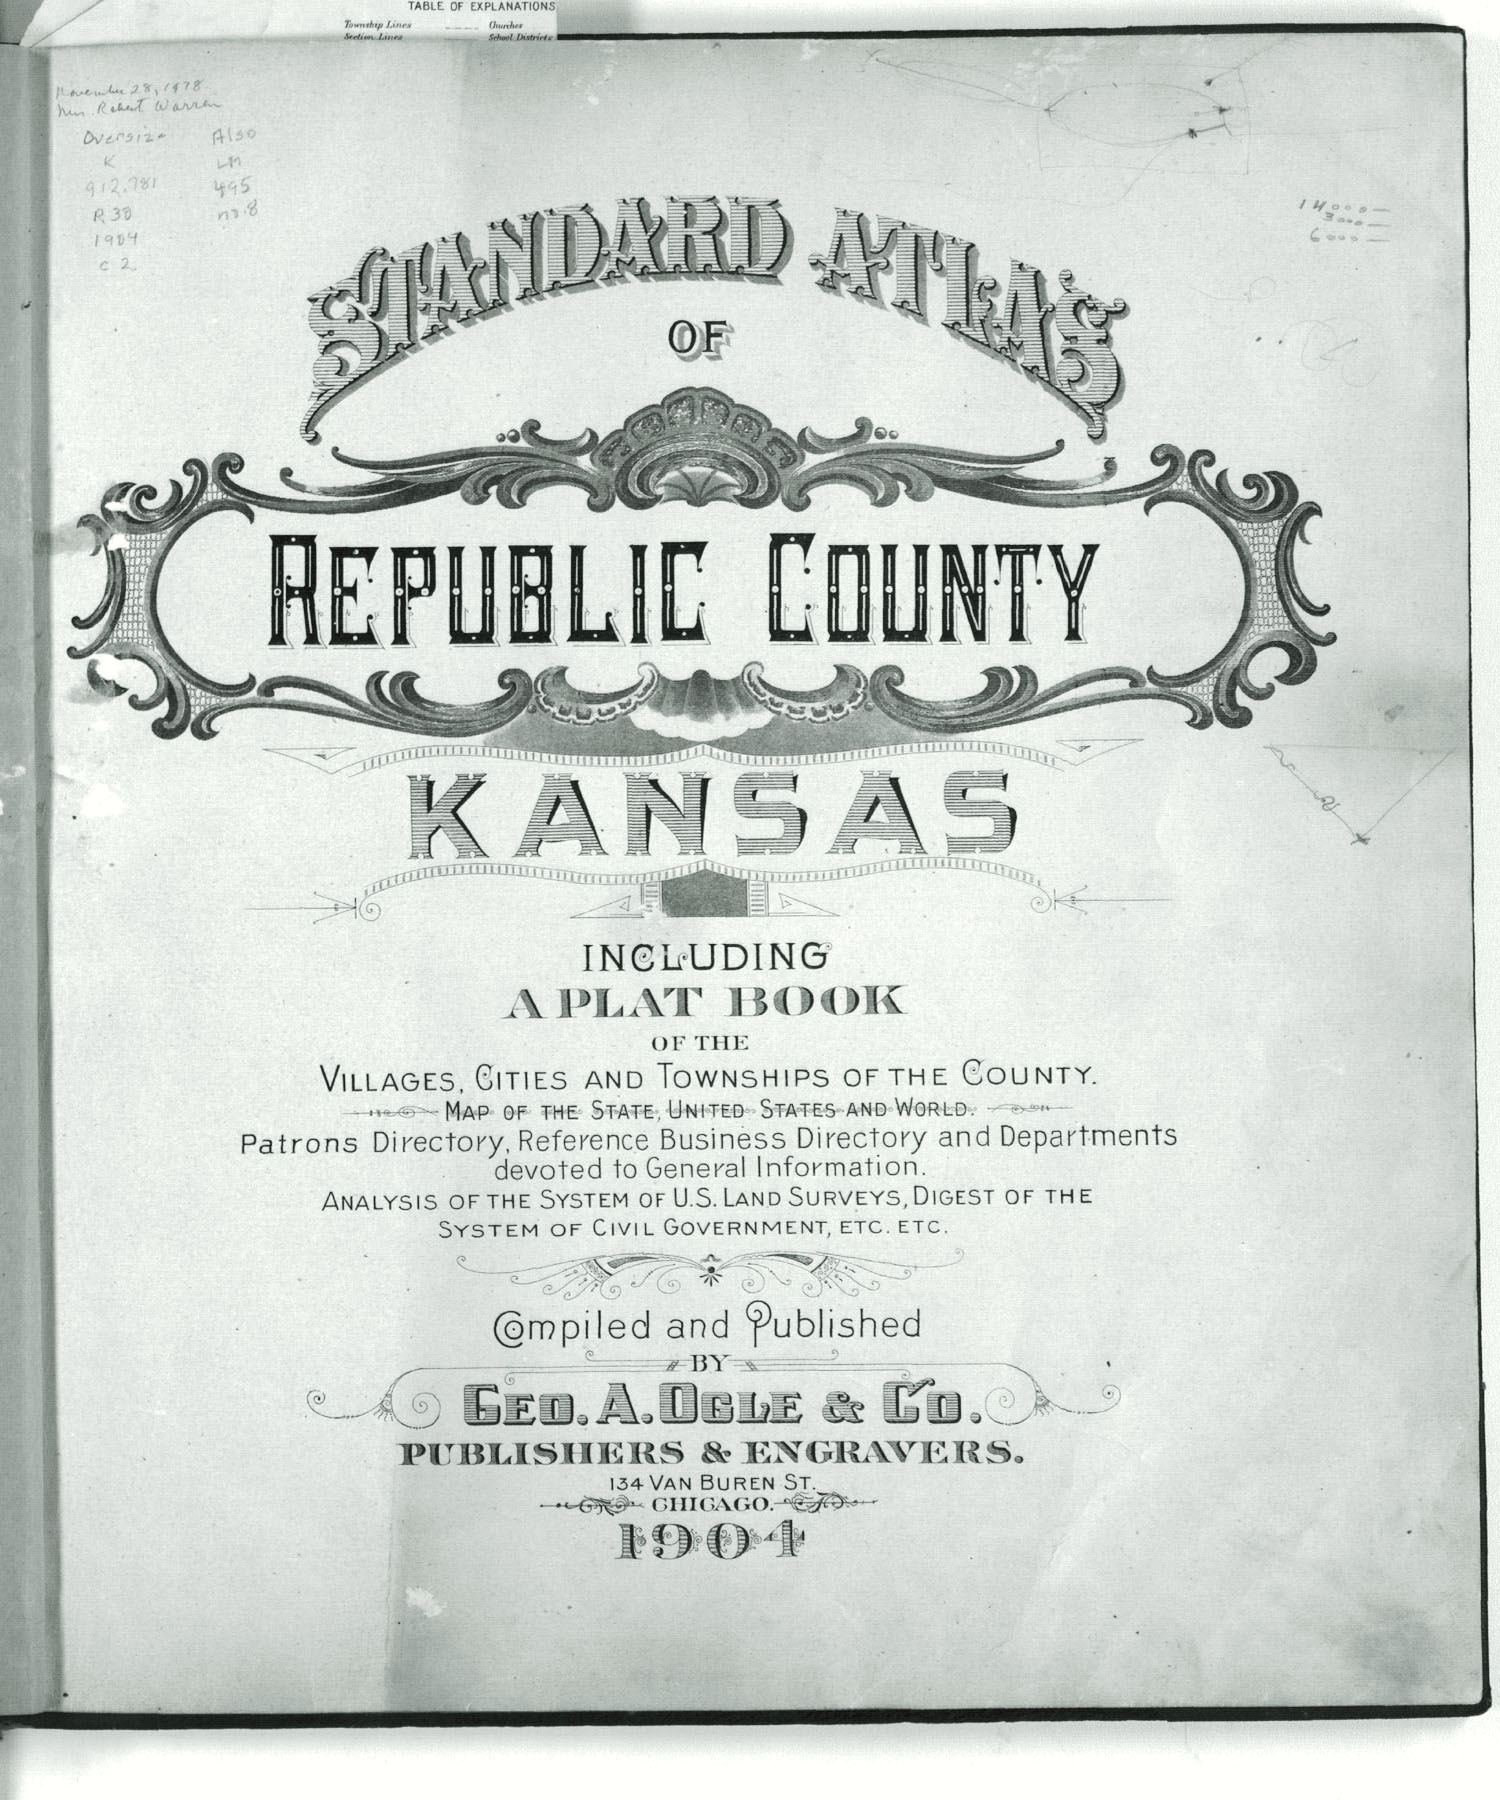 Standard atlas of Republic County, Kansas - Title Page